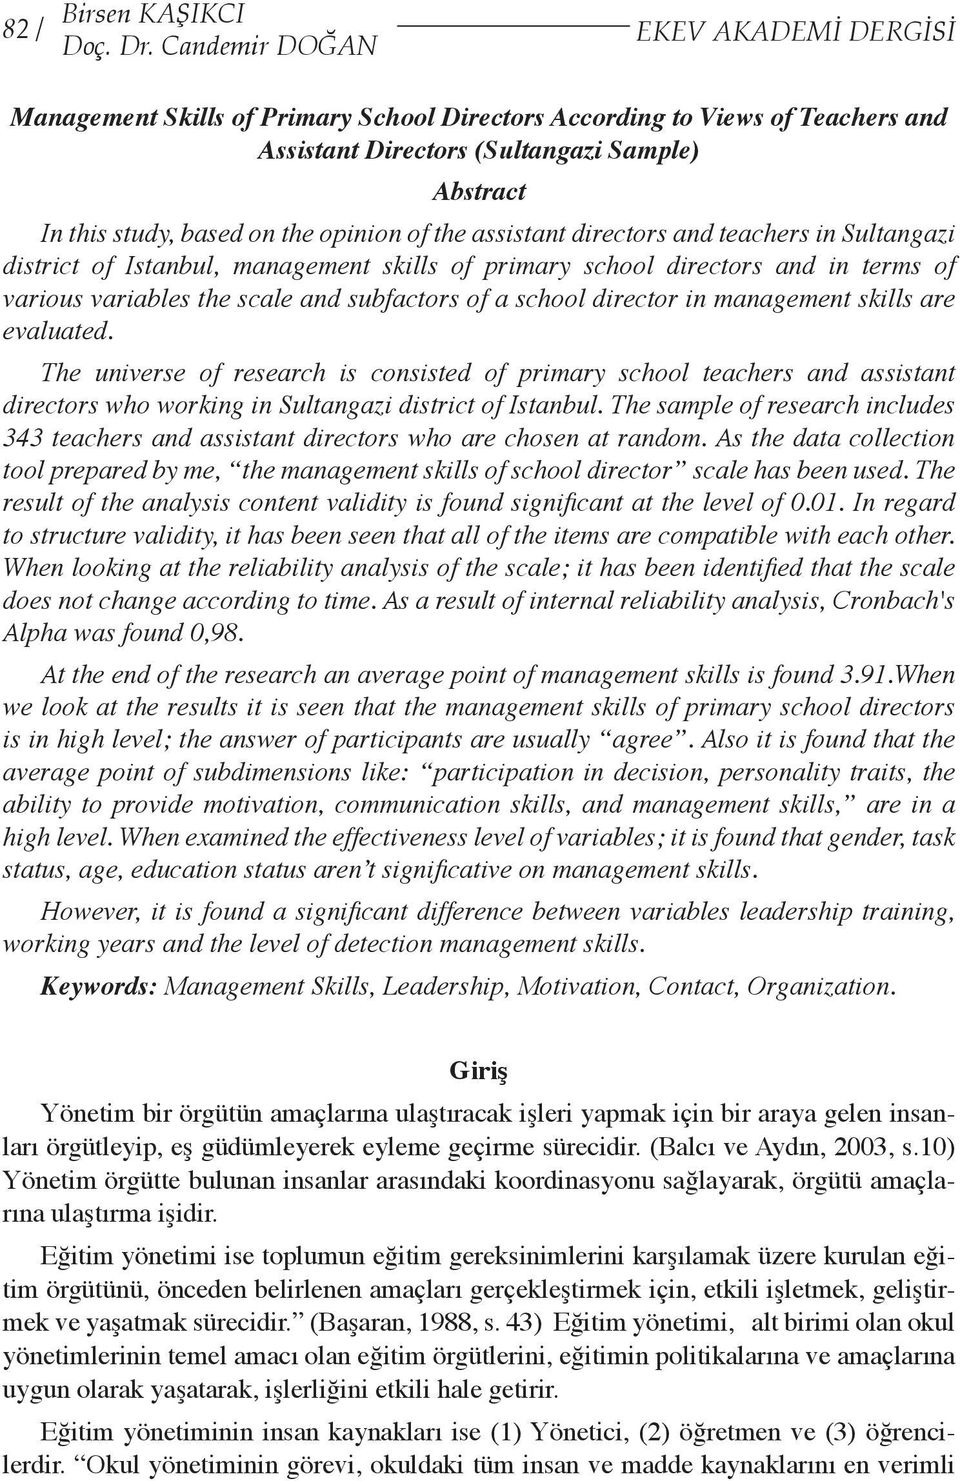 opinion of the assistant directors and teachers in Sultangazi district of Istanbul, management skills of primary school directors and in terms of various variables the scale and subfactors of a